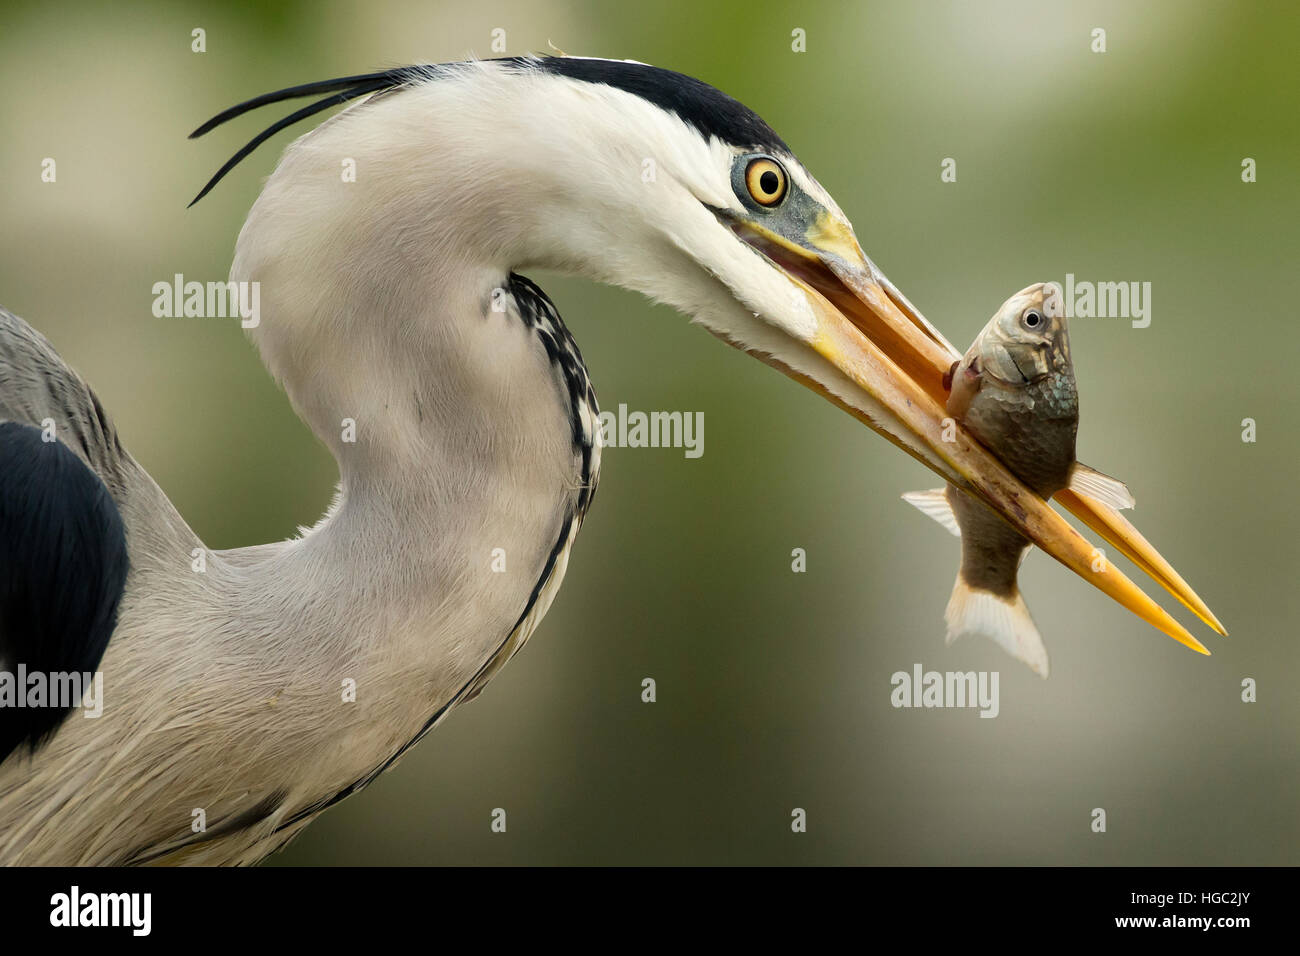 Grey heron (Ardea cinerea) catching a fish - Stock Image